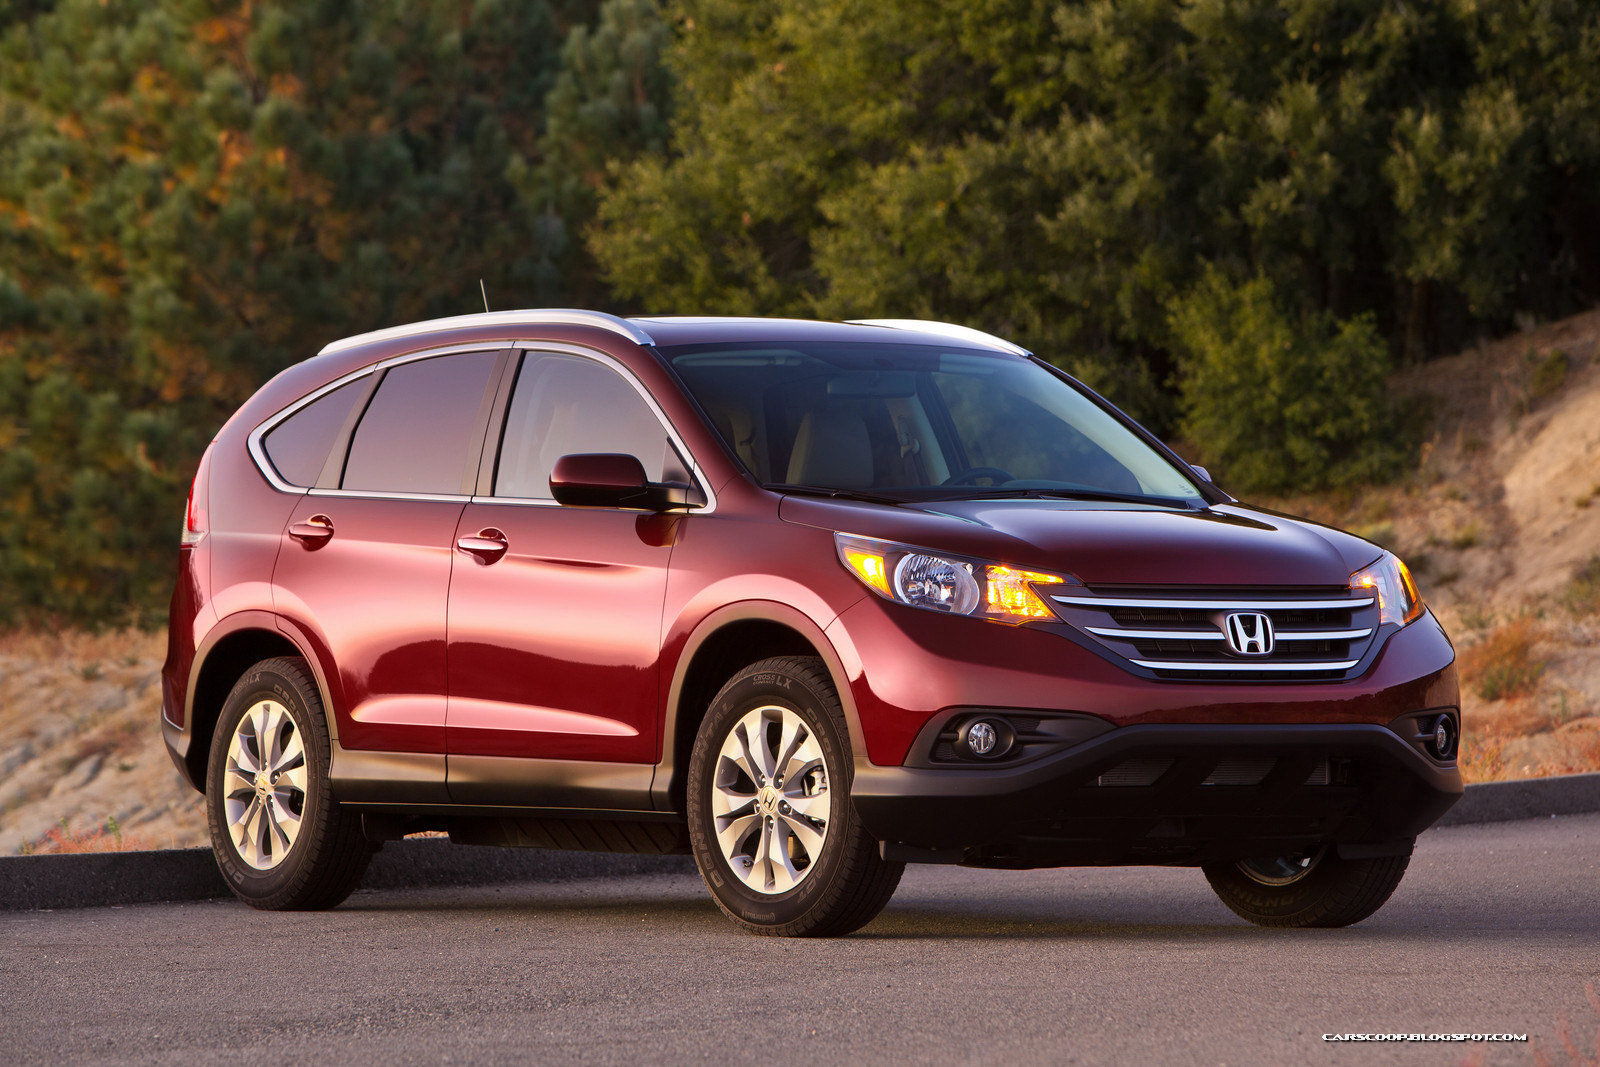 2012 honda cr v price 21 000 for Honda crv price